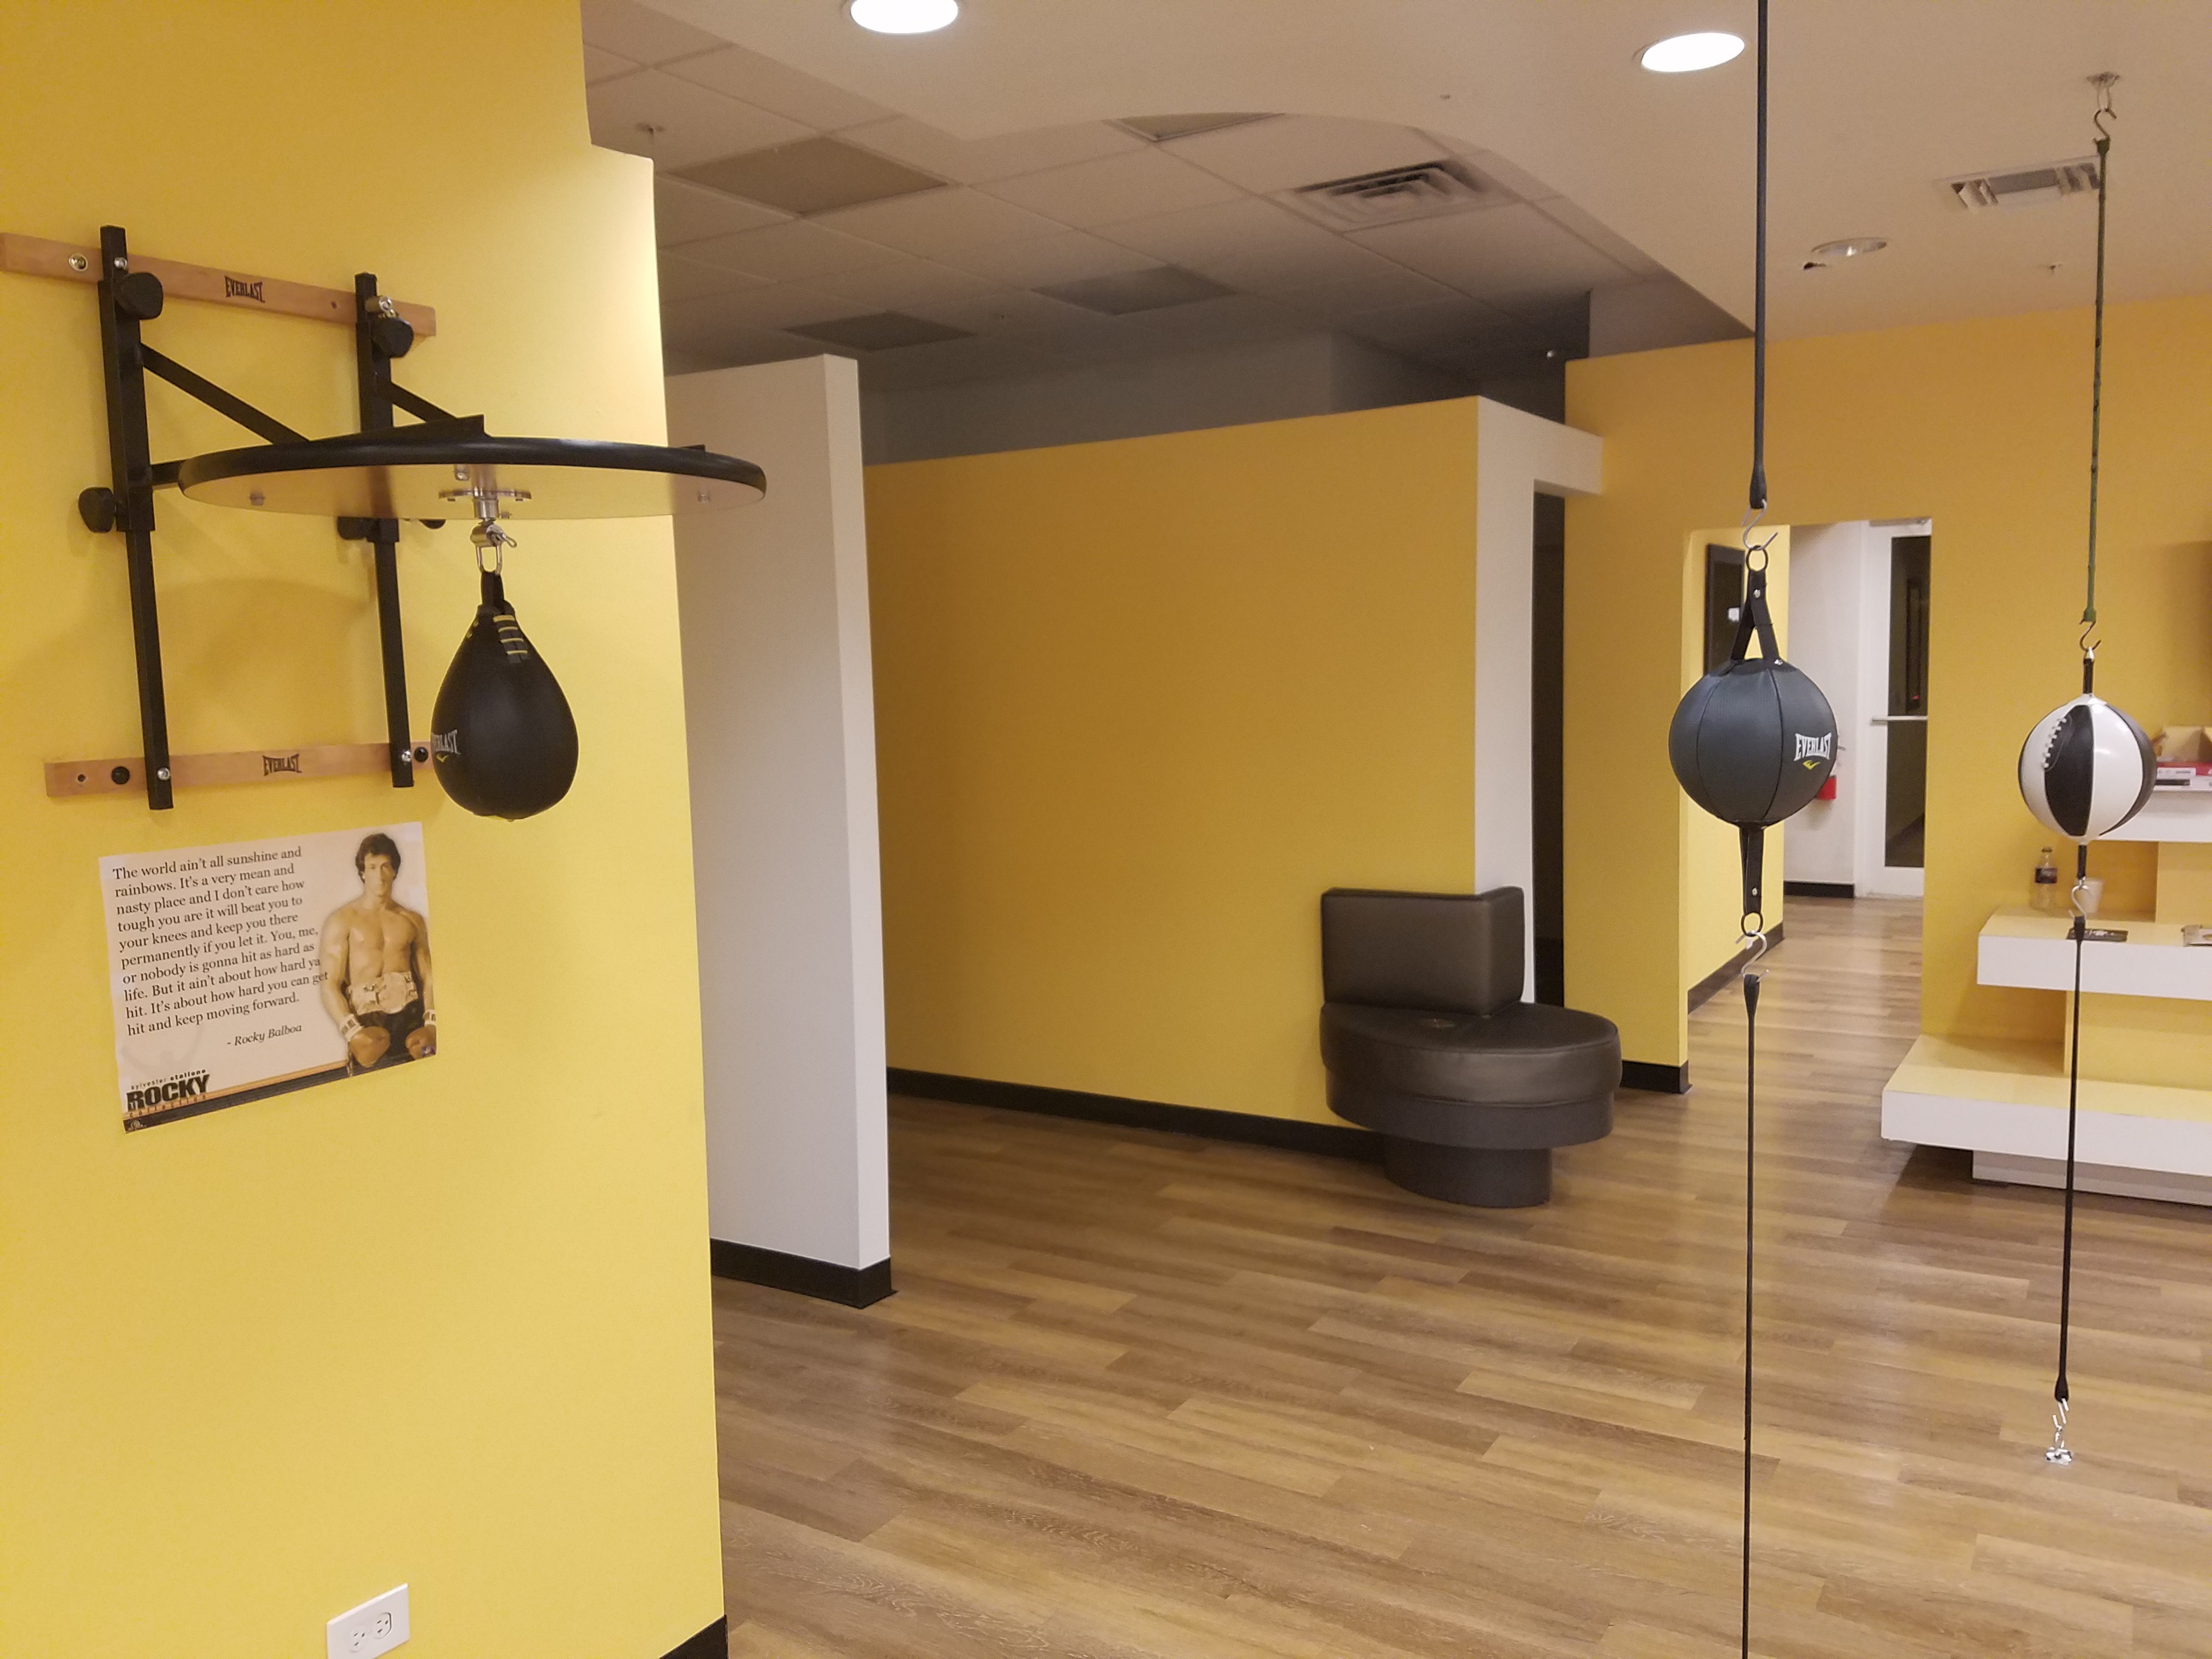 Markos Fitness And Boxing 4601 Military Trl, Jupiter, FL 33458 - YP.com